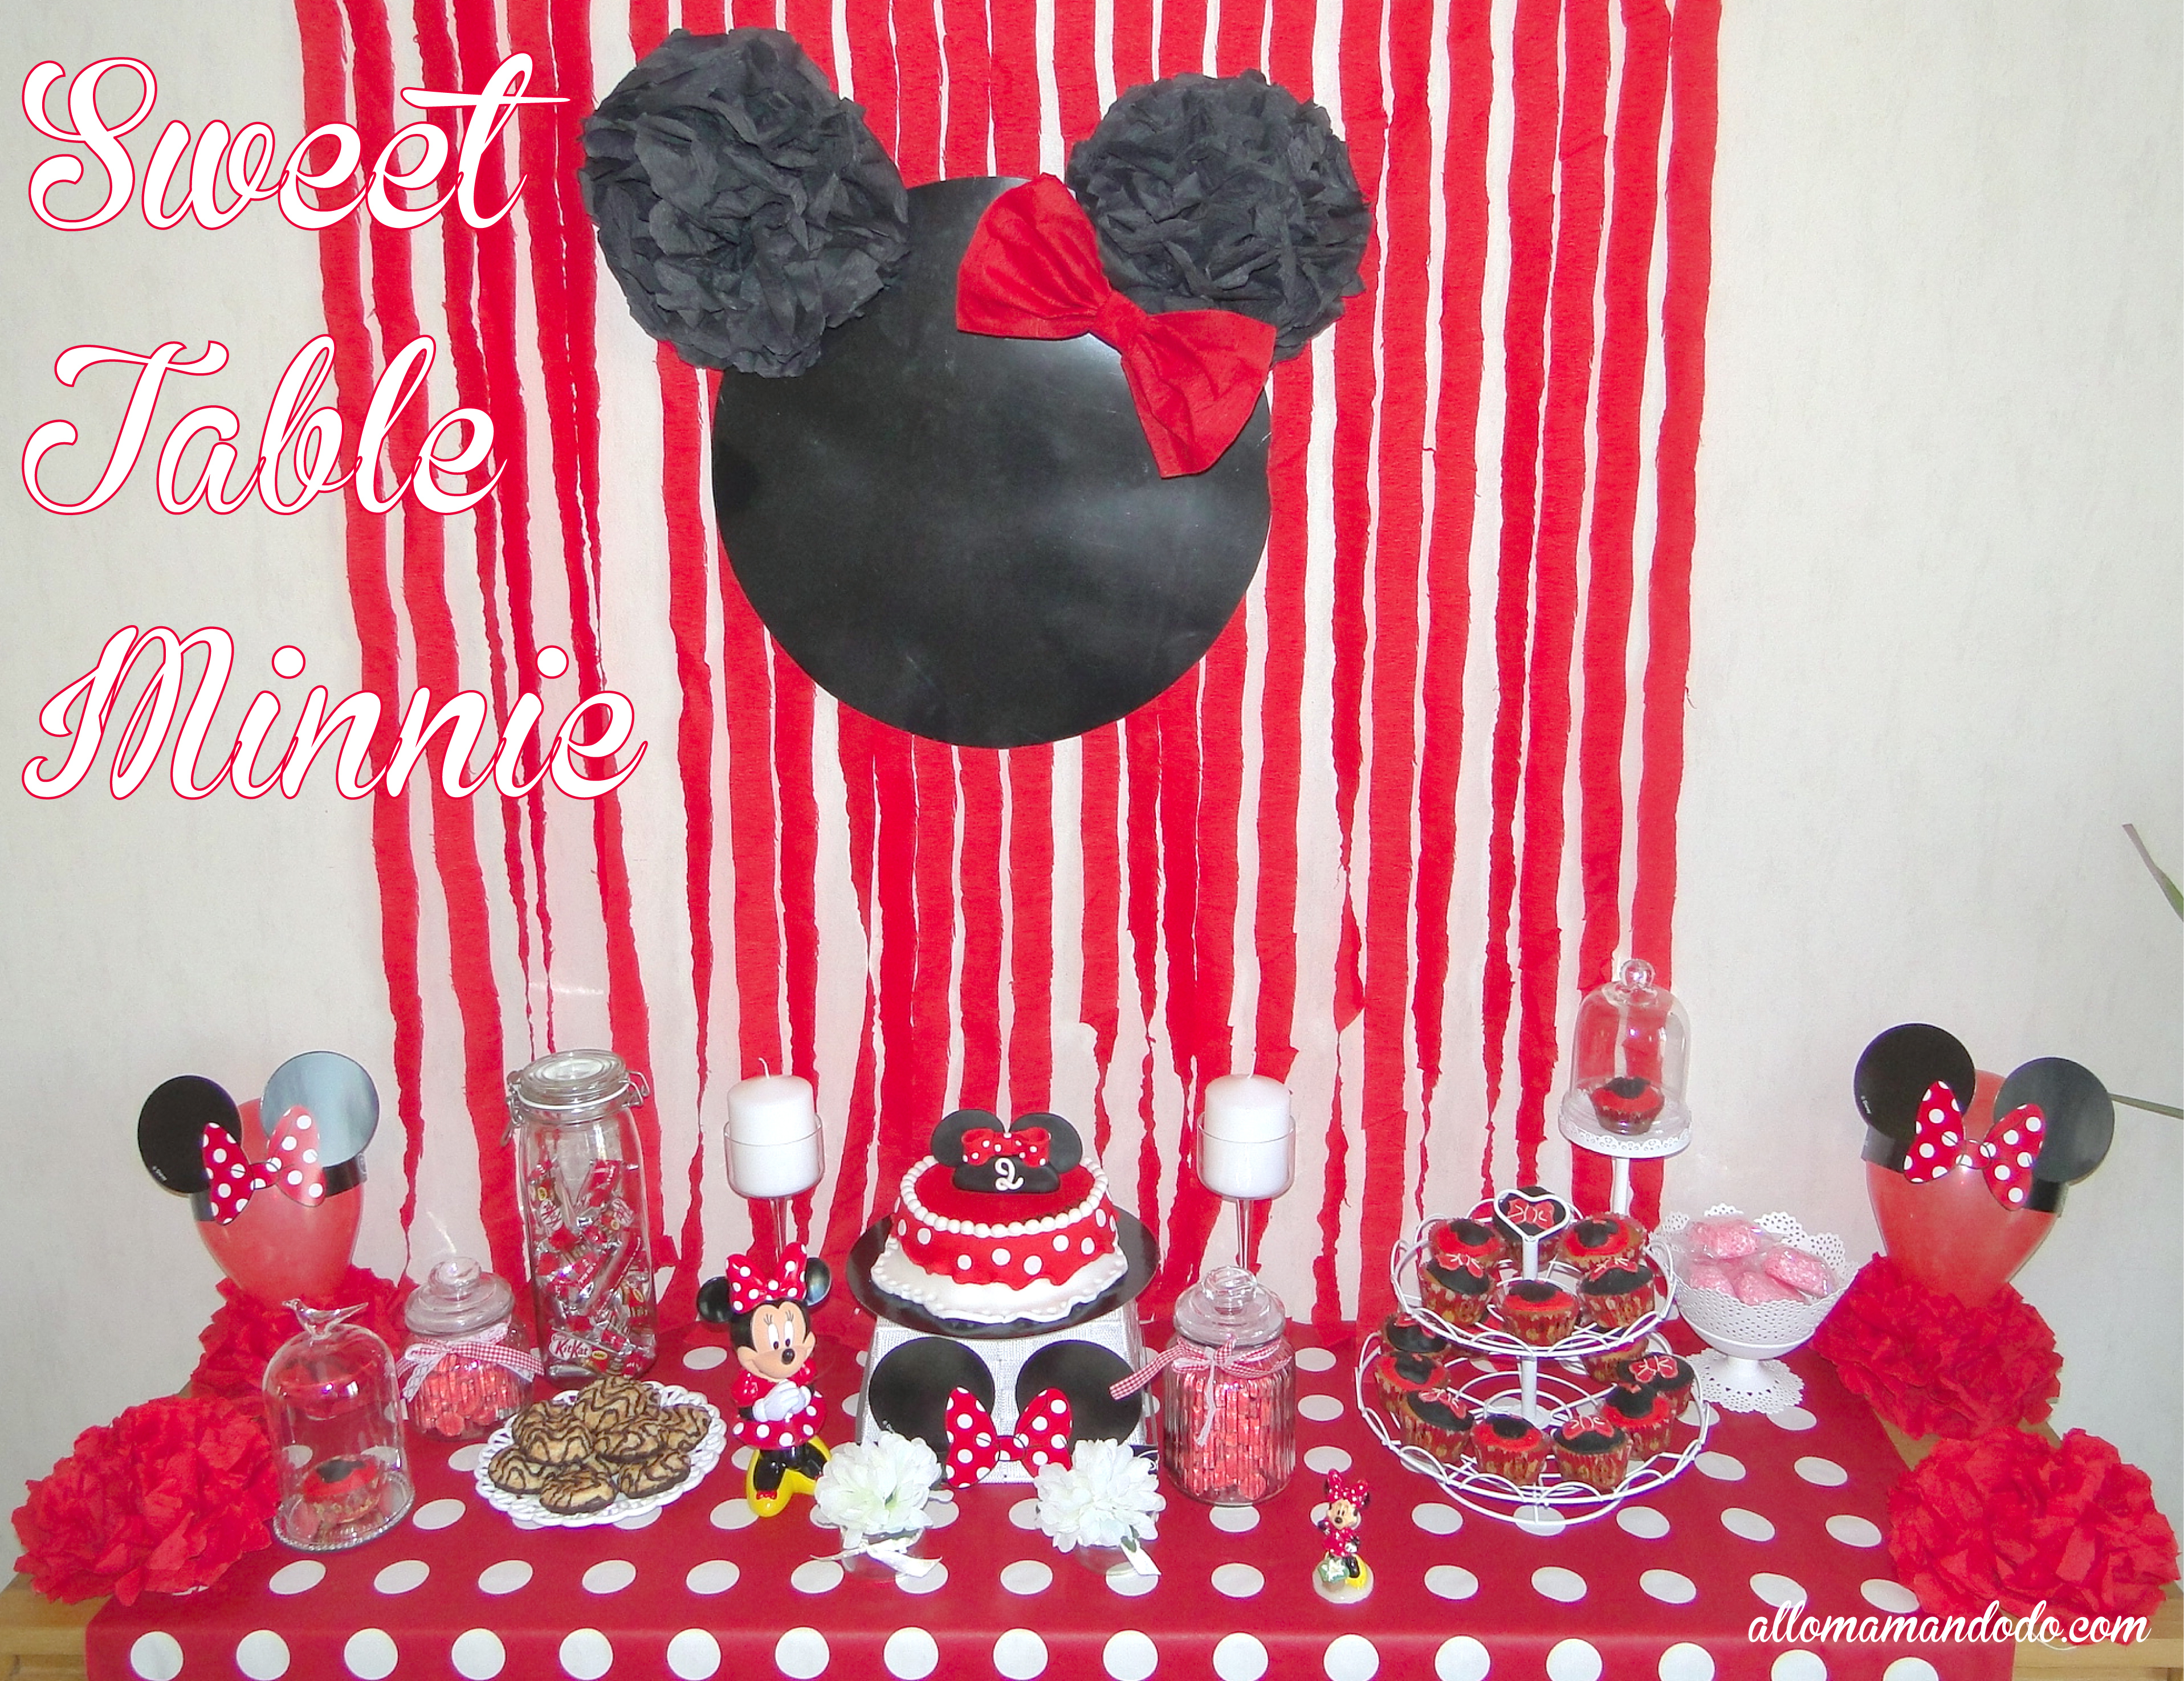 un anniversaire minnie la d coration de la sweet table de ptitepomme allo maman dodo. Black Bedroom Furniture Sets. Home Design Ideas